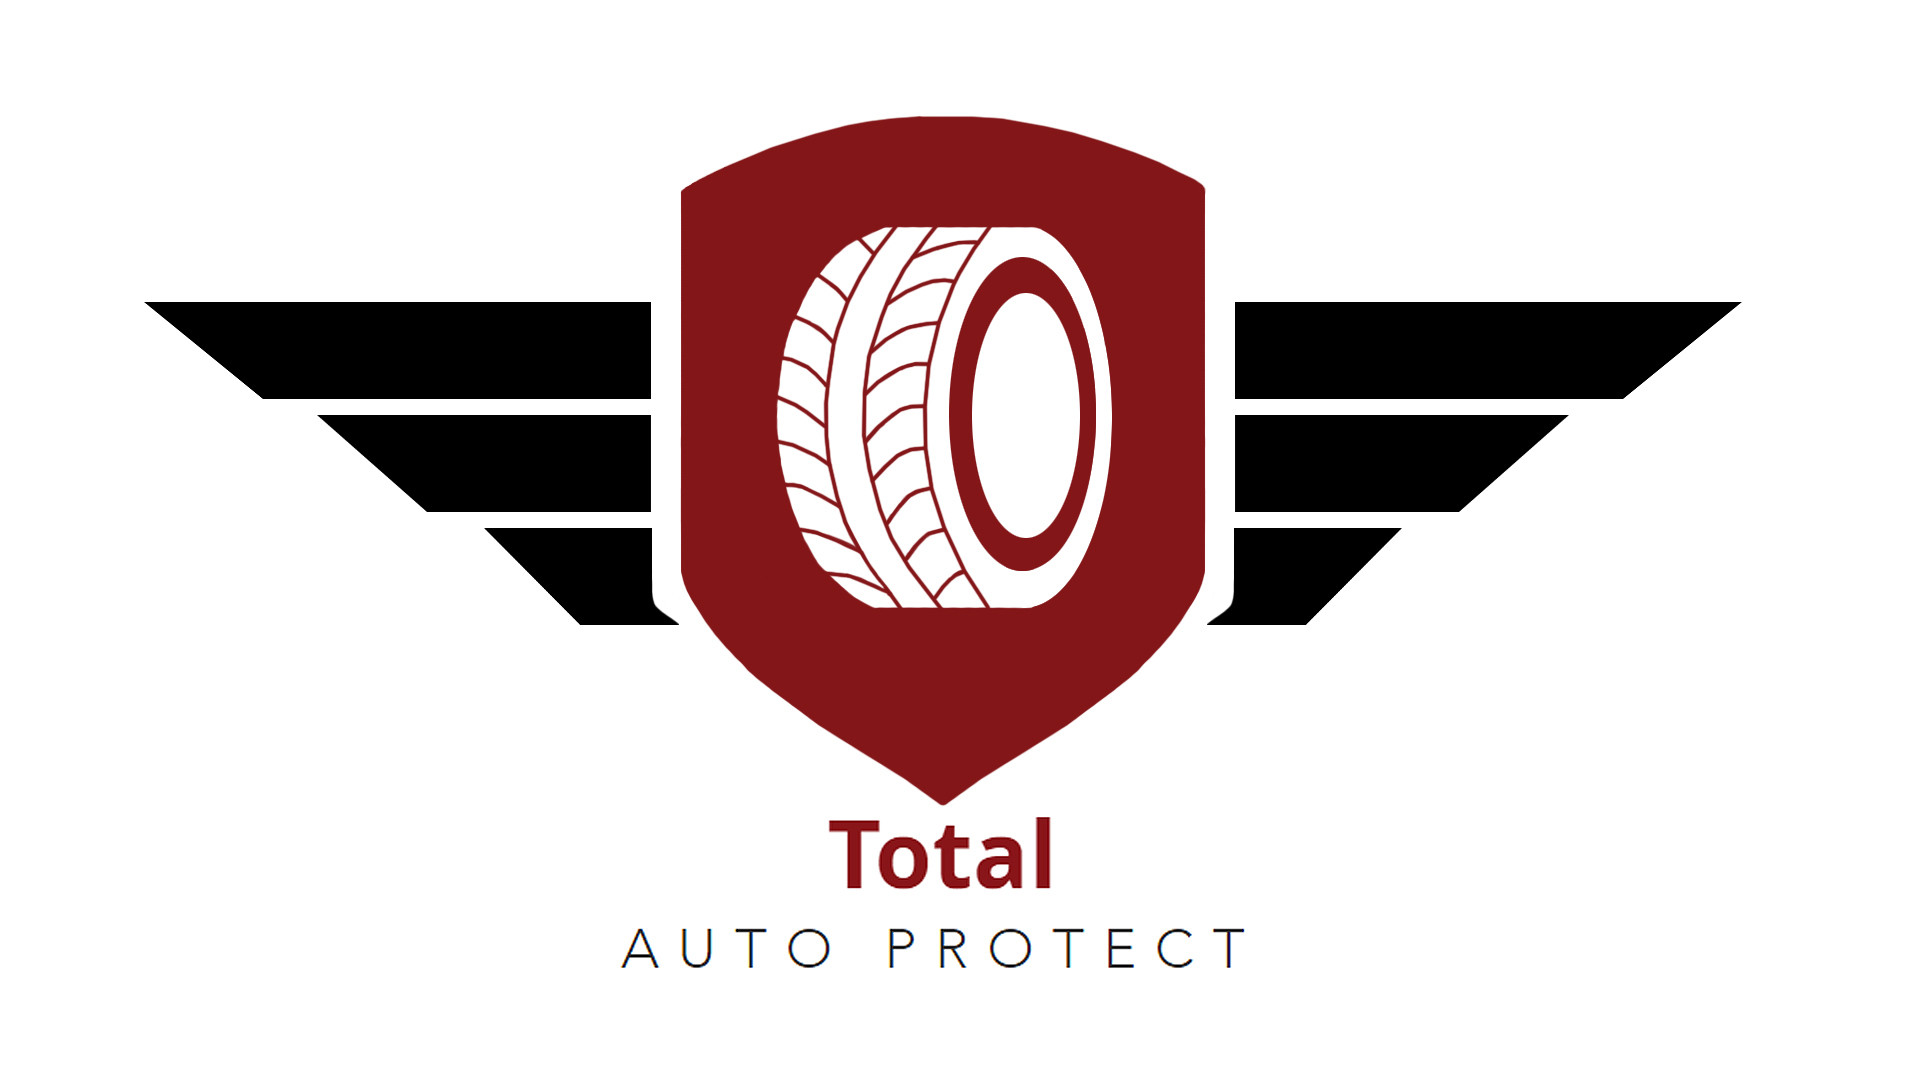 www.totalautoprotect.com